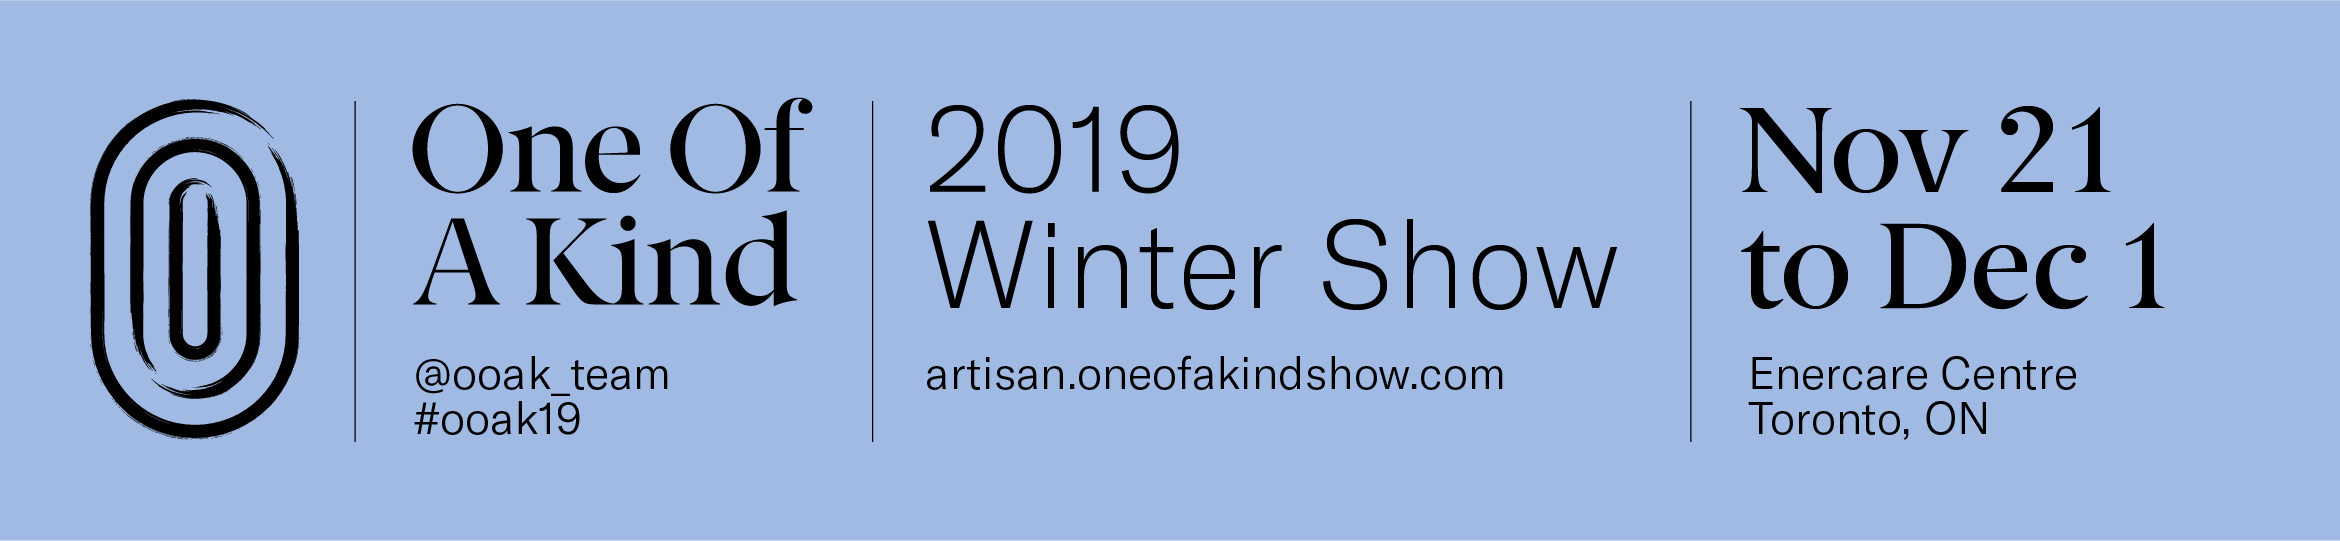 ONE OF A KIND WINTER SHOW